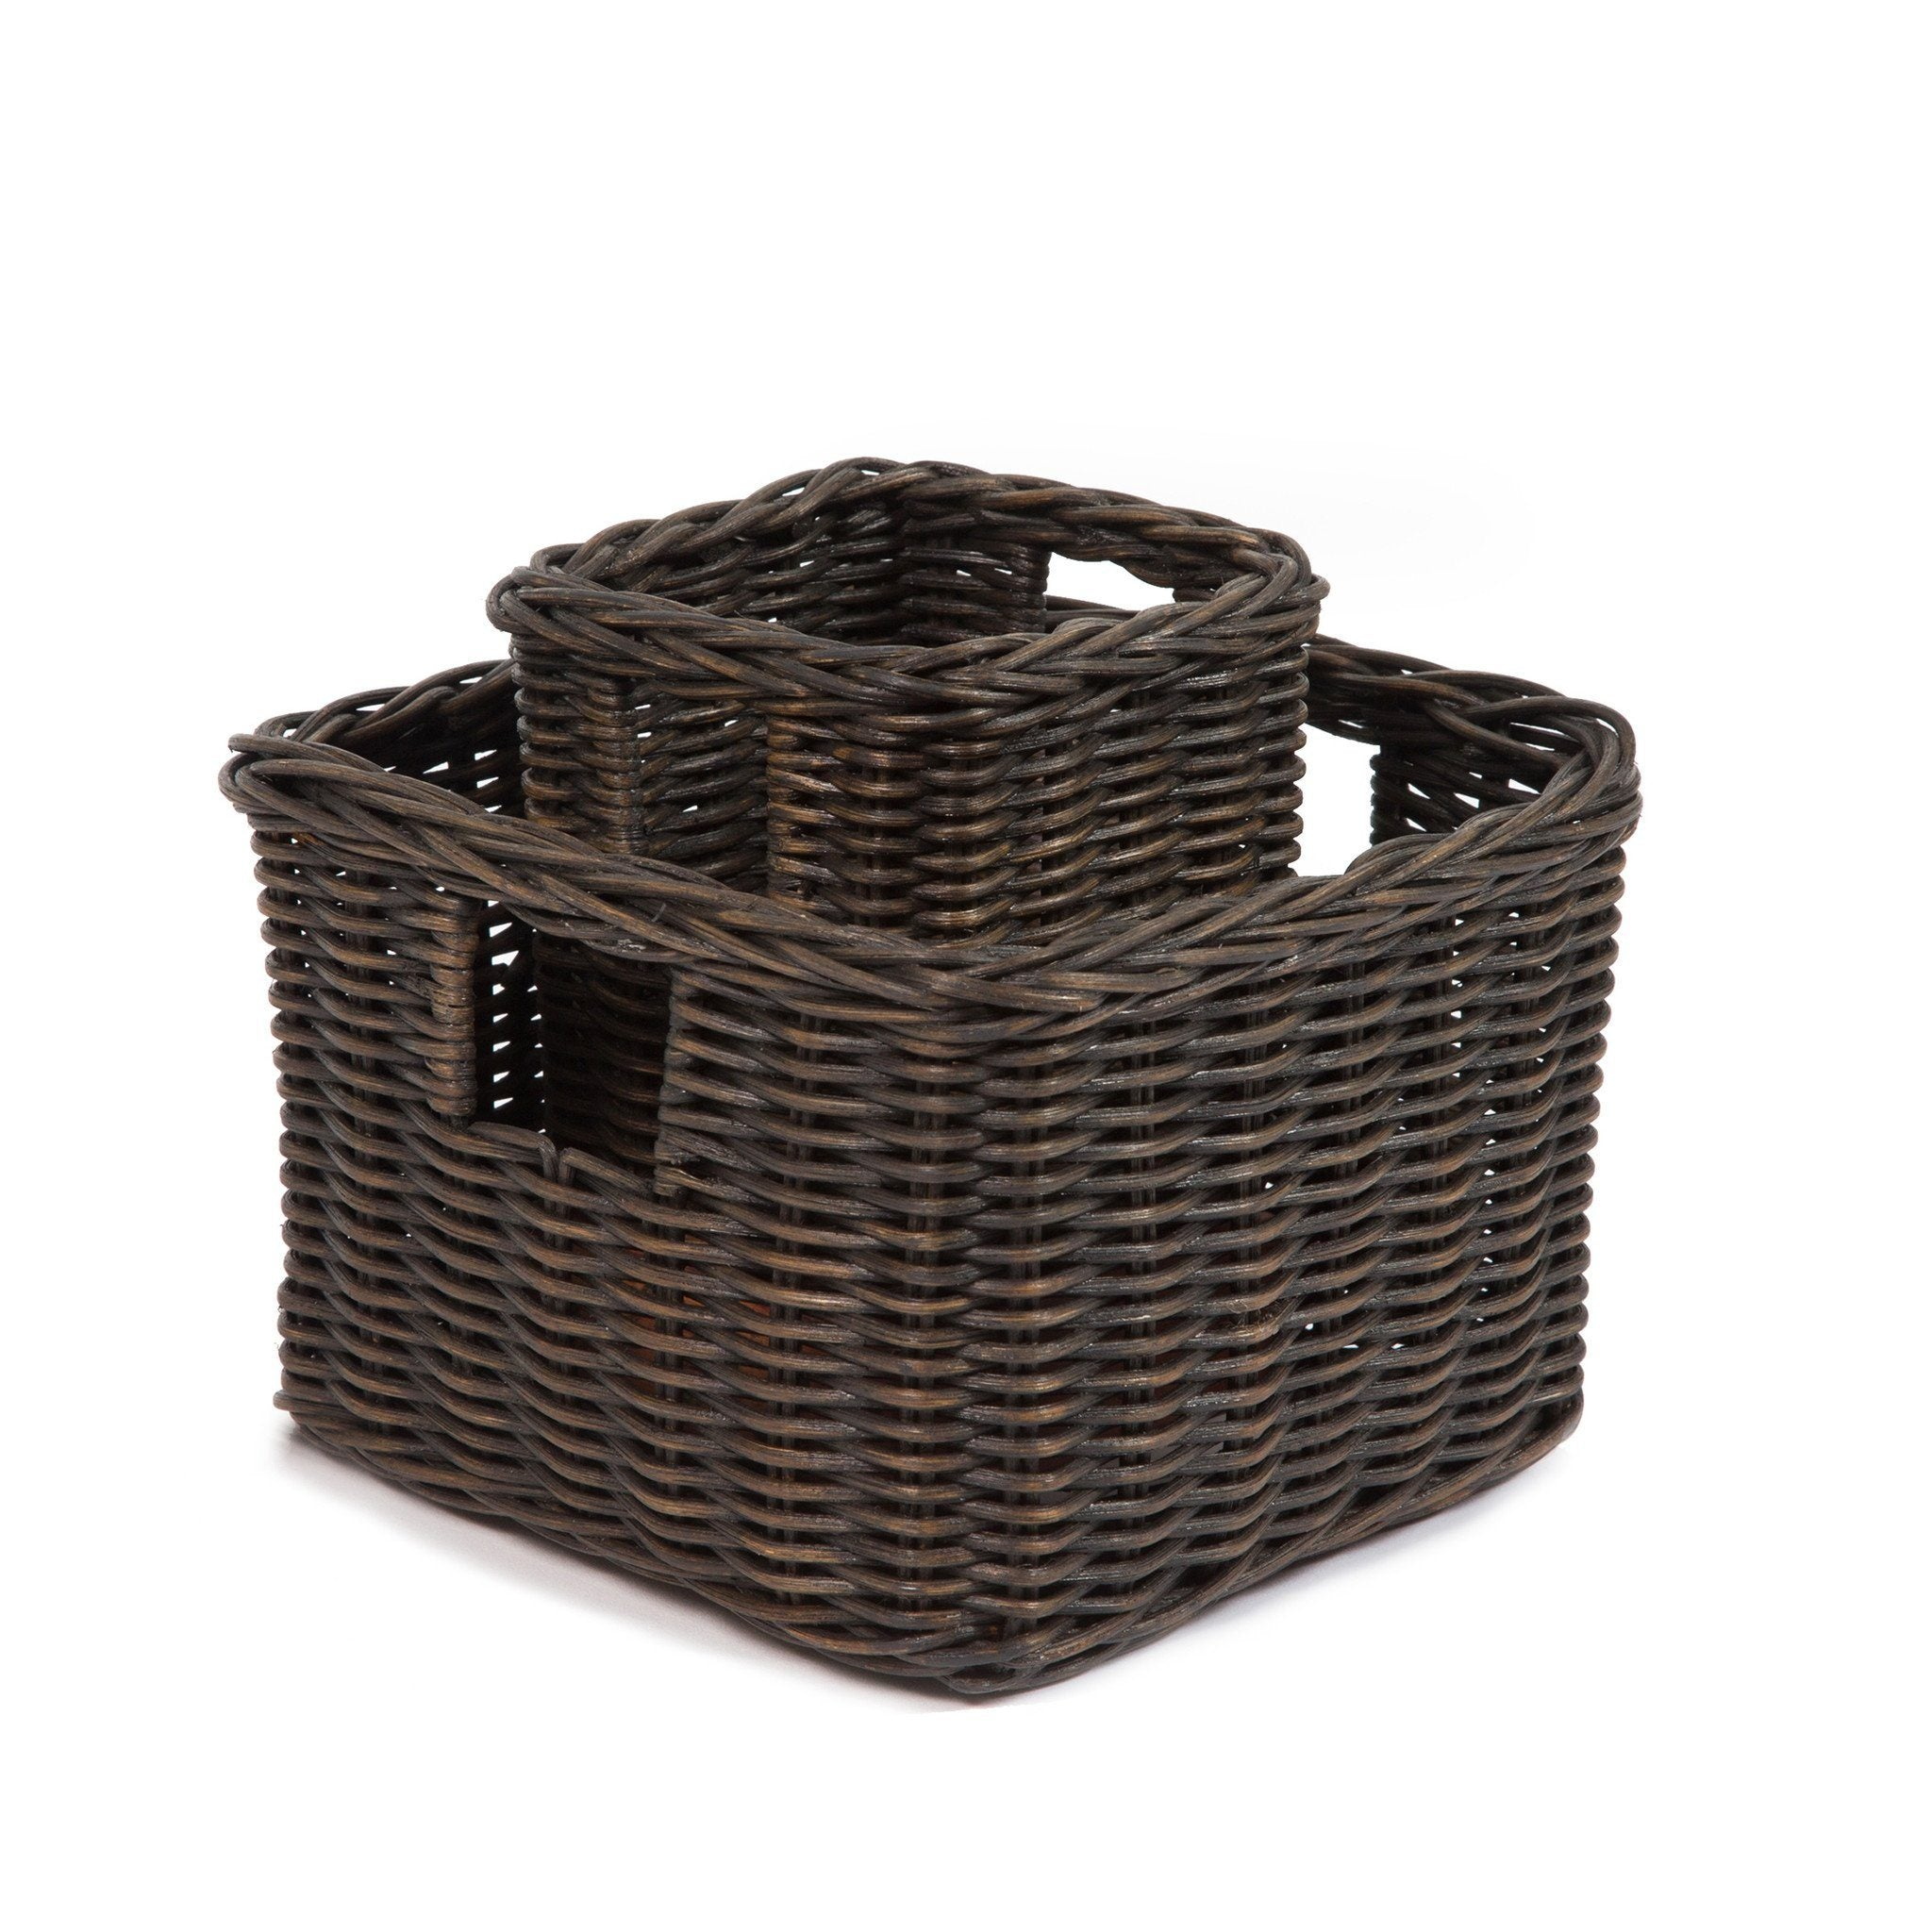 The Basket Lady Low Square Wicker Shelf Basket, 2 Sizes Shown | The Basket  Lady ...